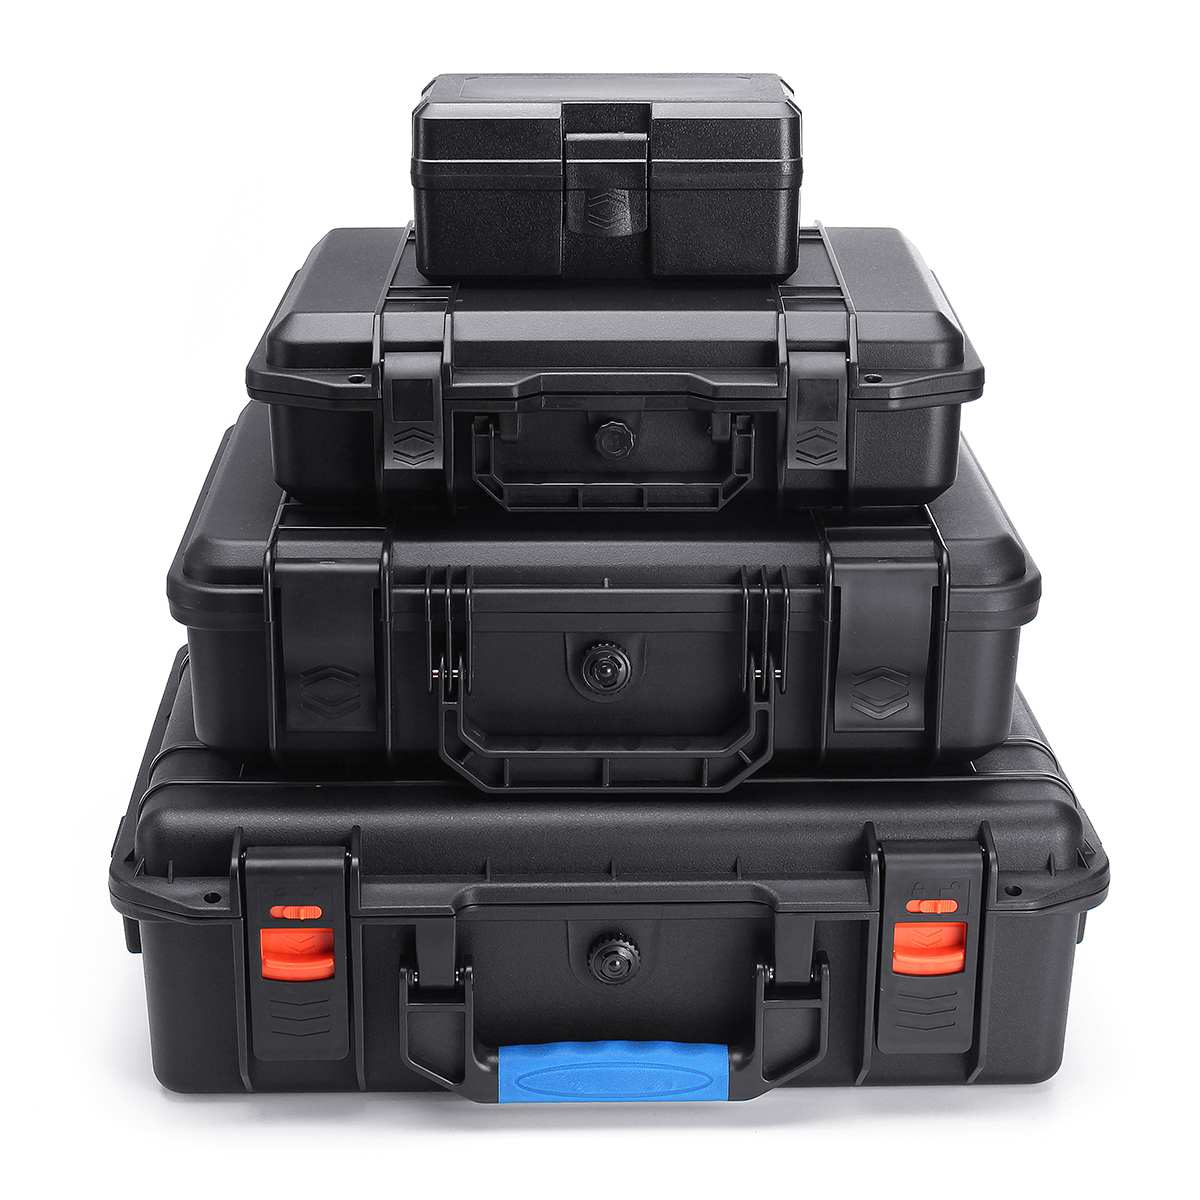 portable-waterproof-hard-carry-case-bag-tool-kits-storage-box-safety-protector-organizer-hardware-toolbox-impact-resistant